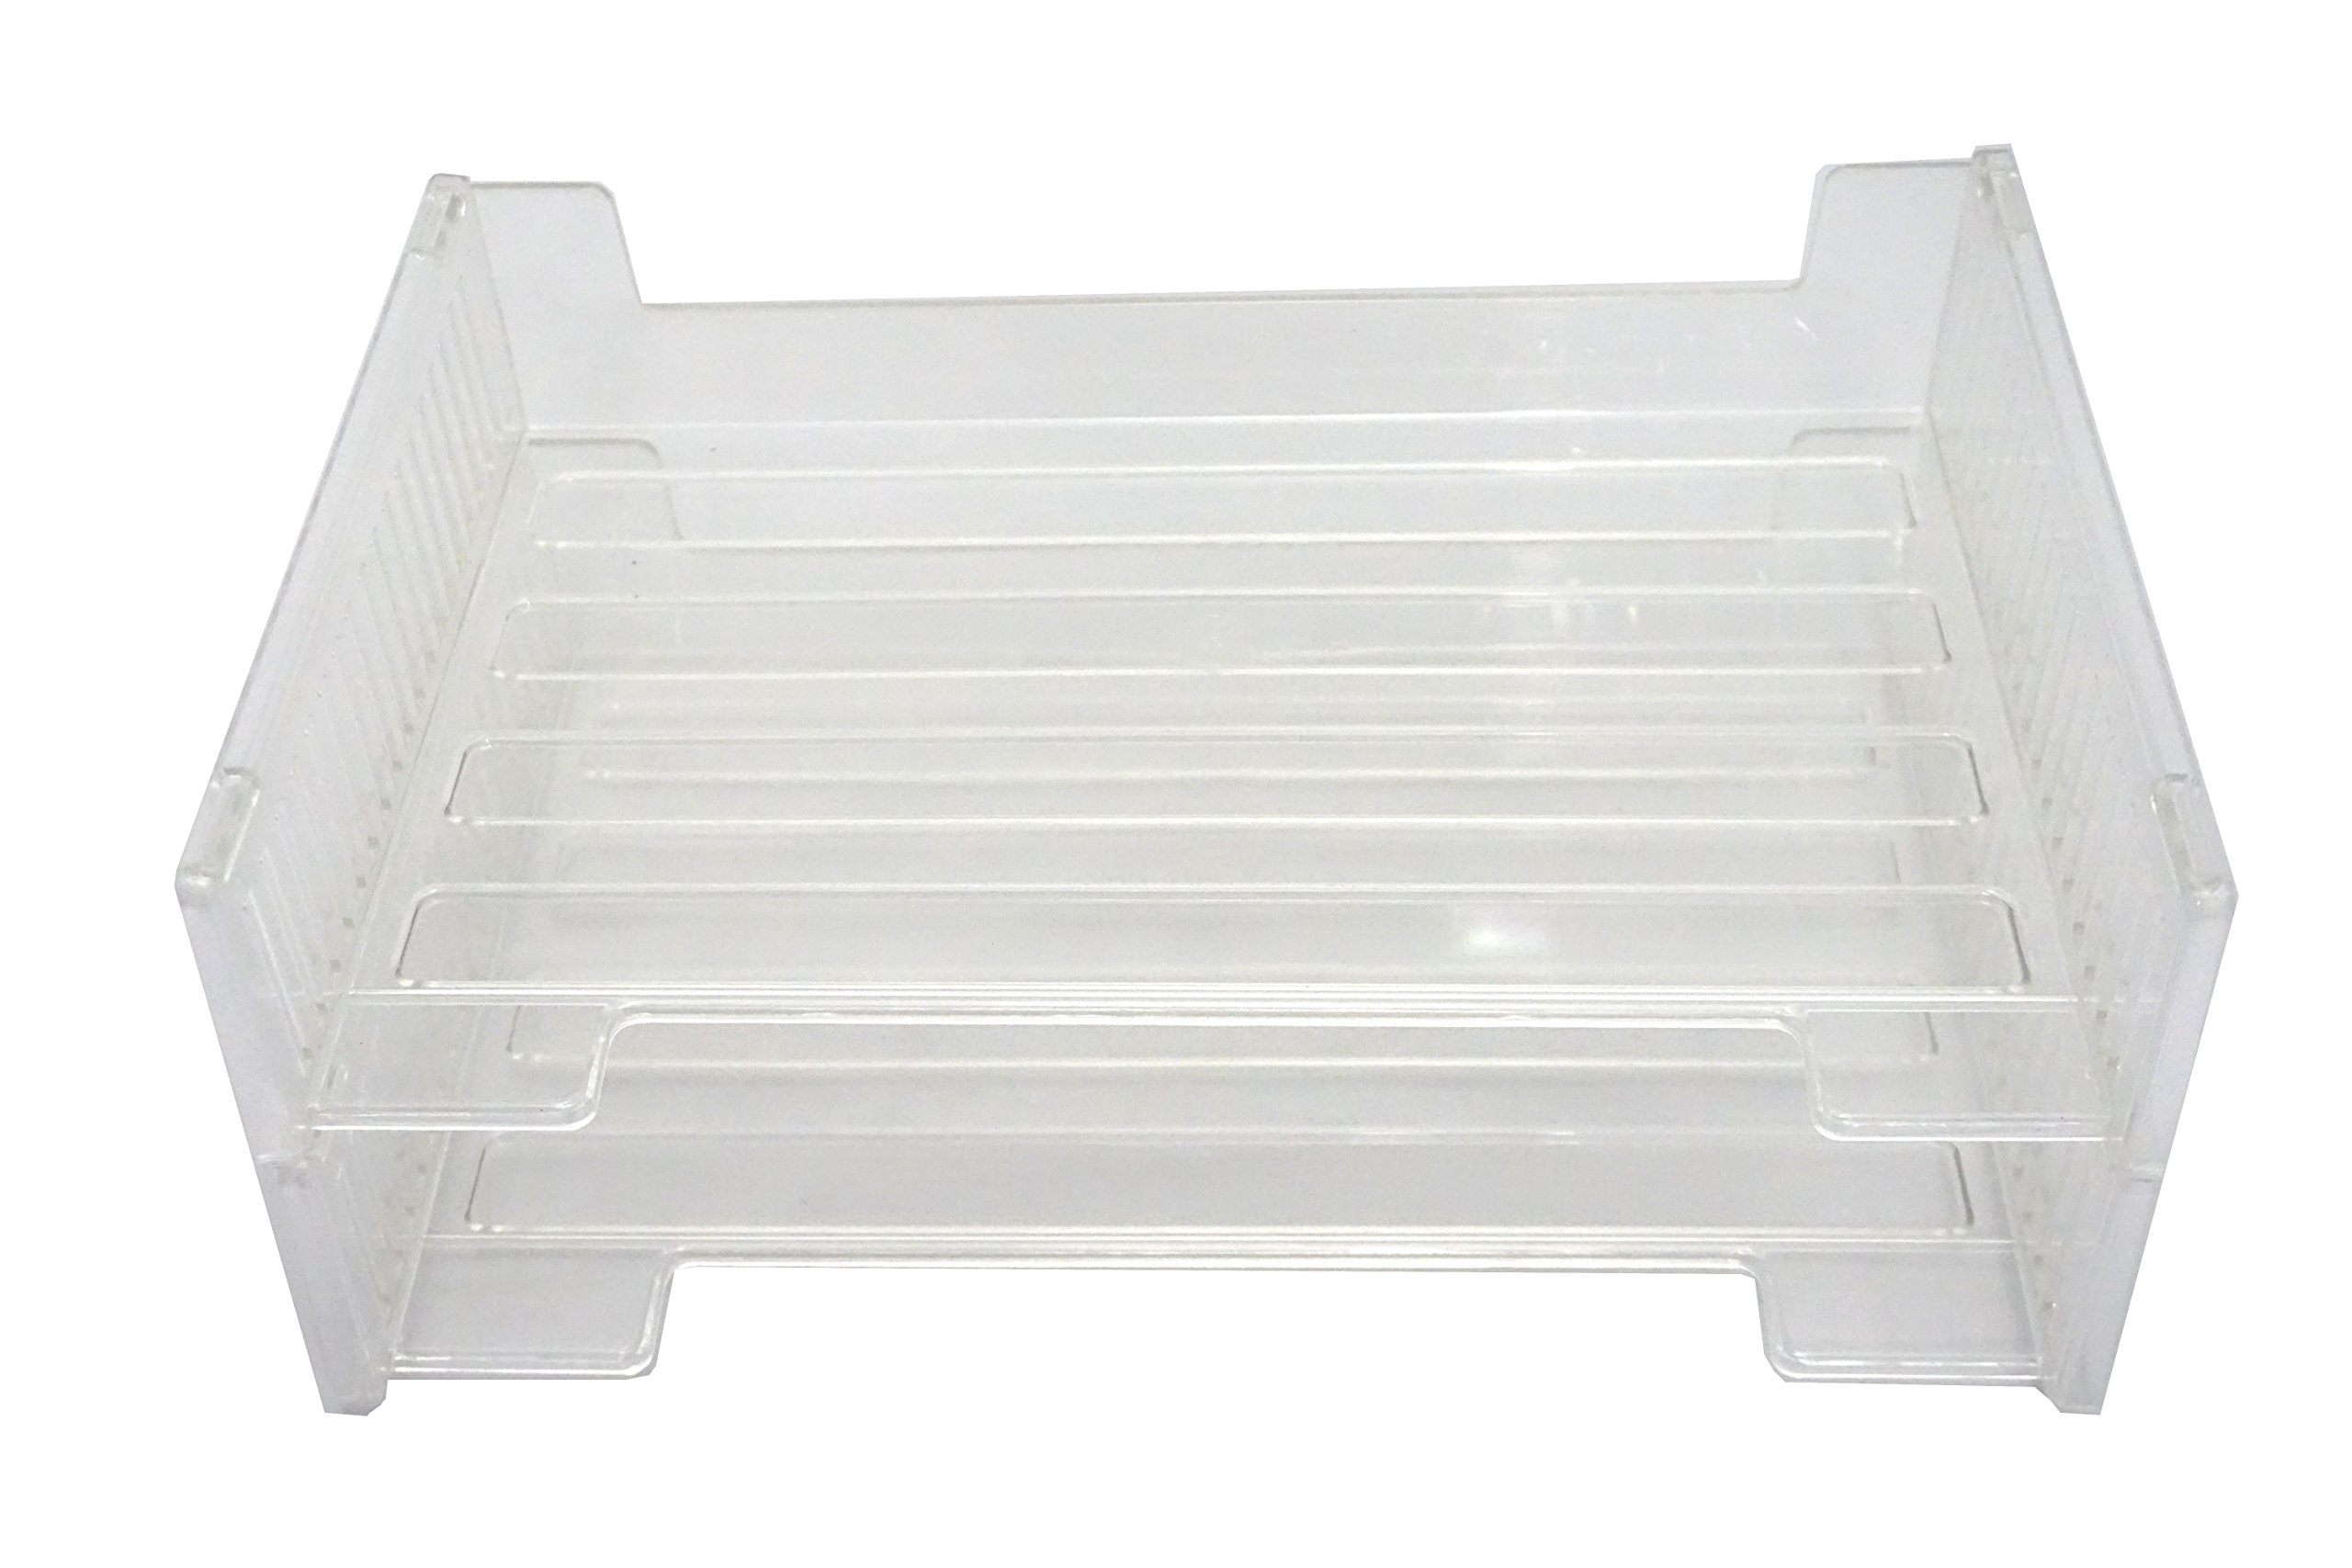 Victor 16221 Stackable Side Loading Letter Tray (2 Pack) Clear Recycled Plastic